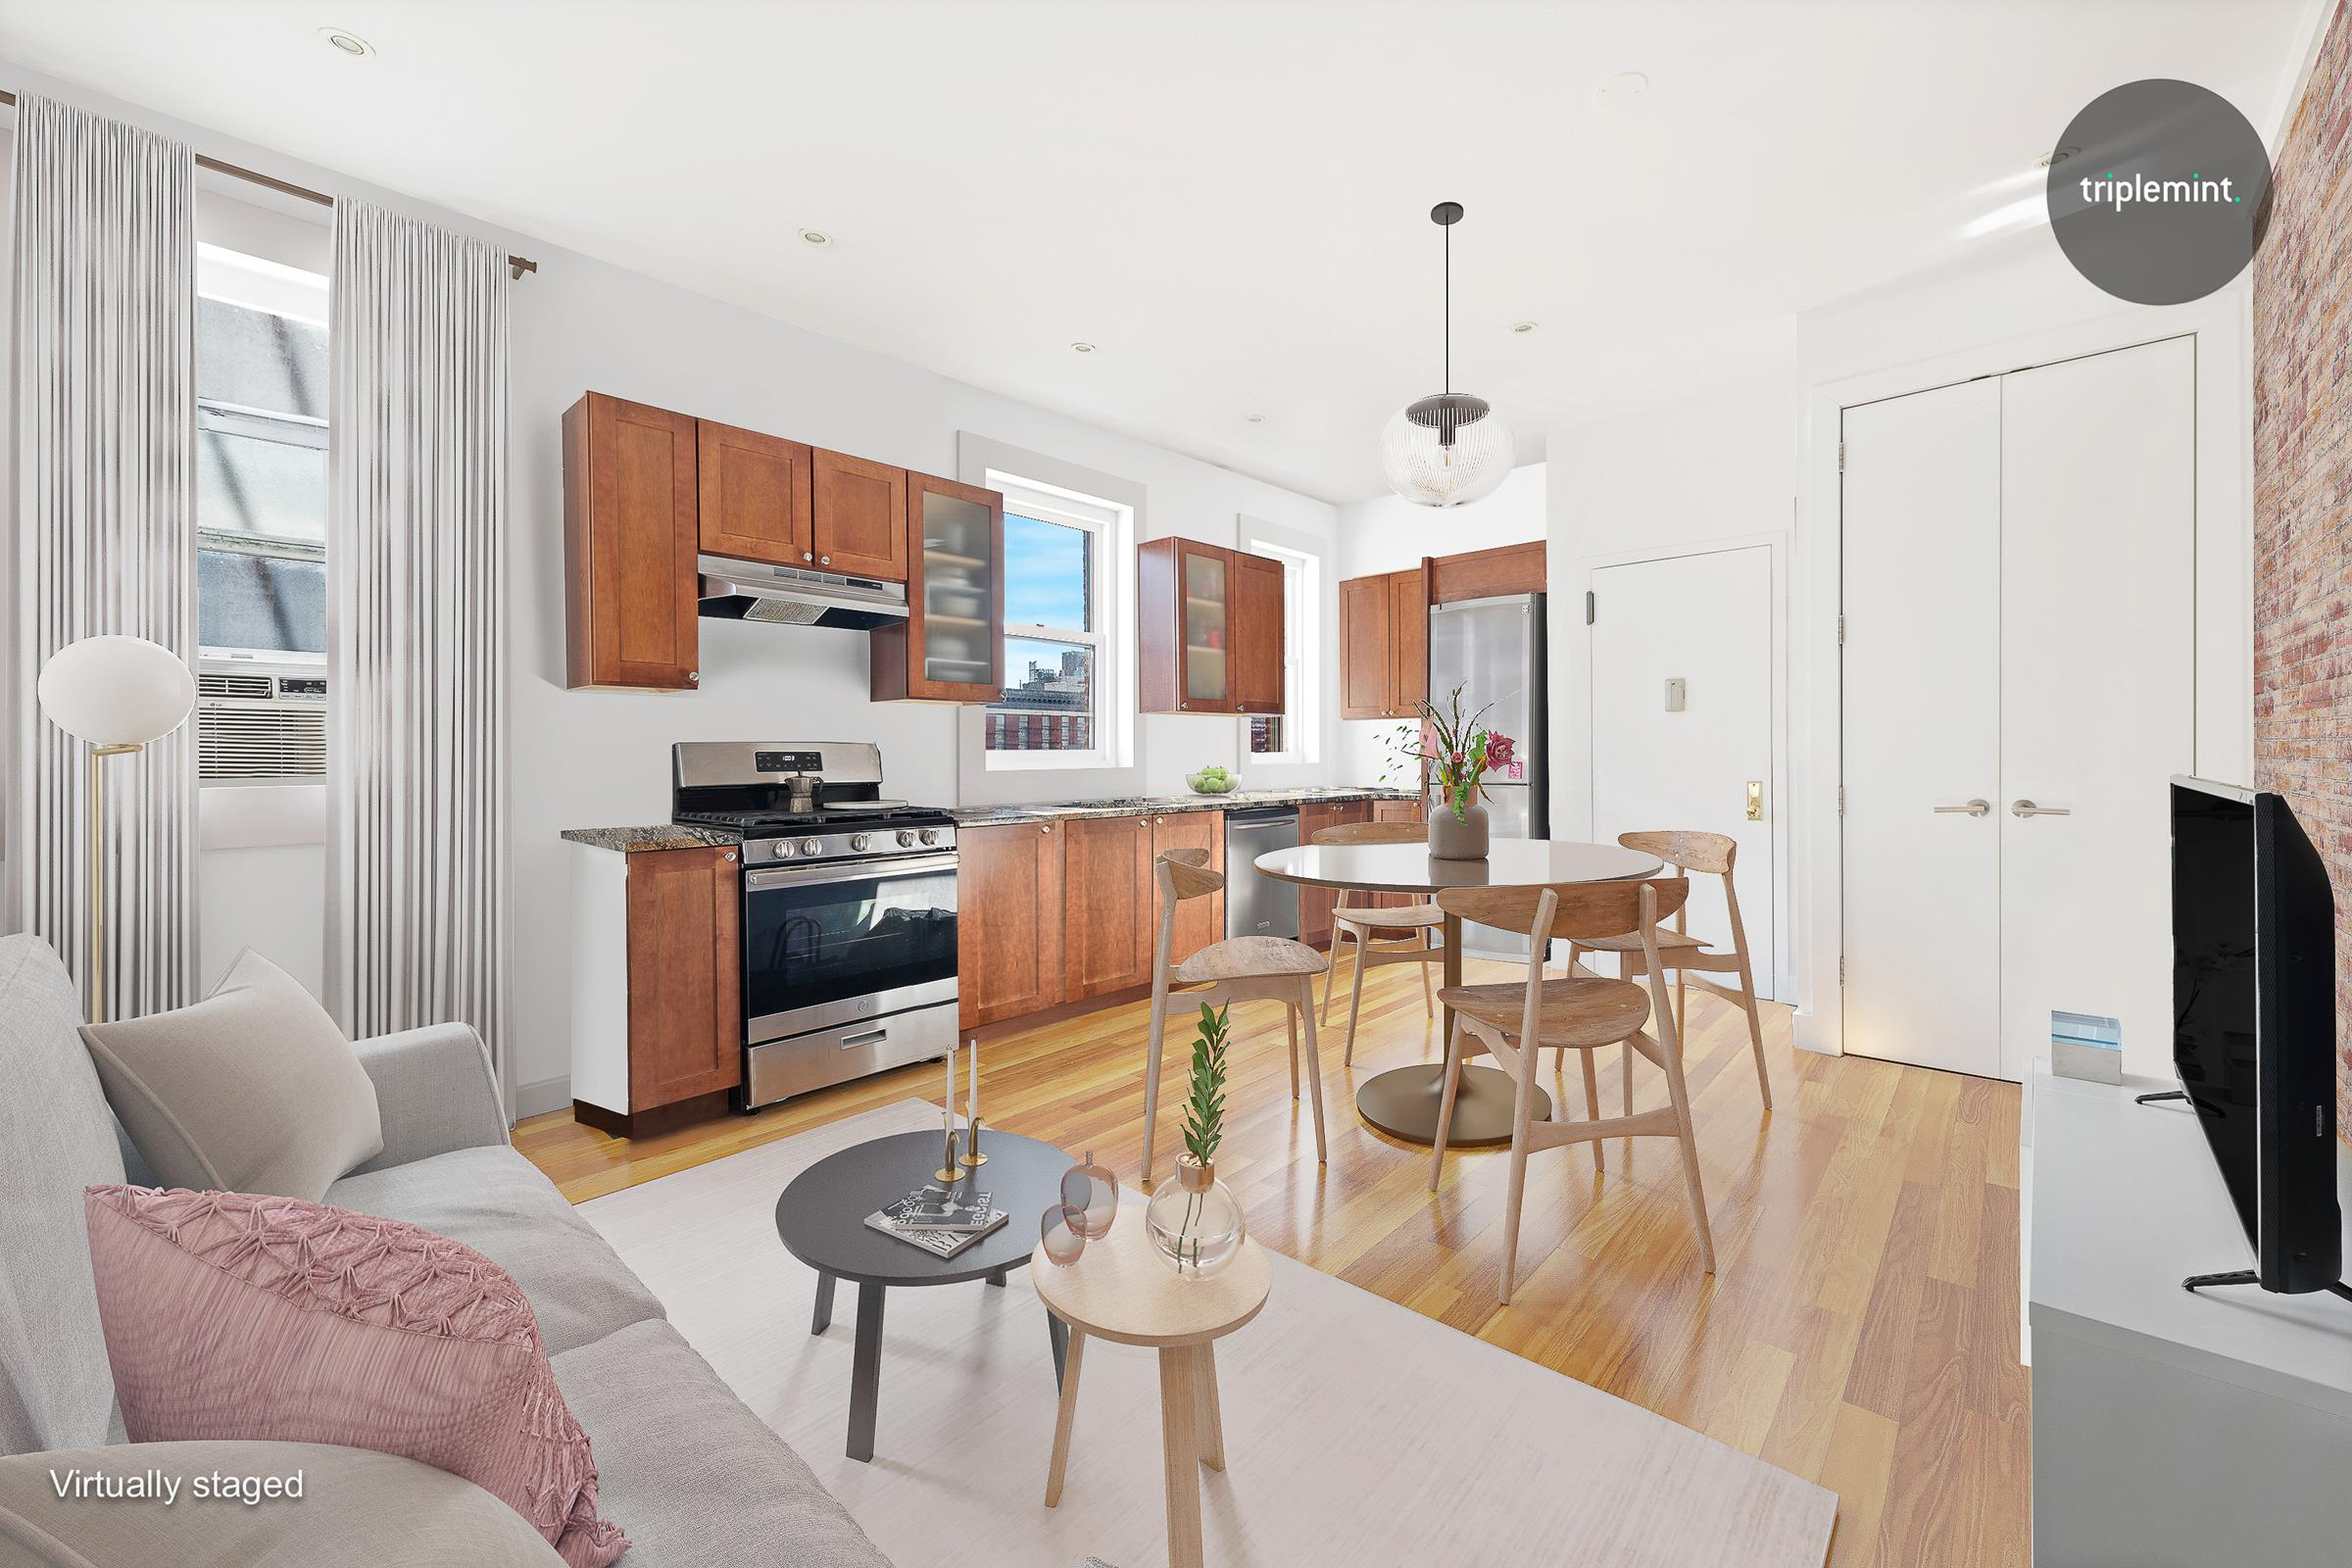 Apartment for sale at 303 West 149th Street, Apt 5-B